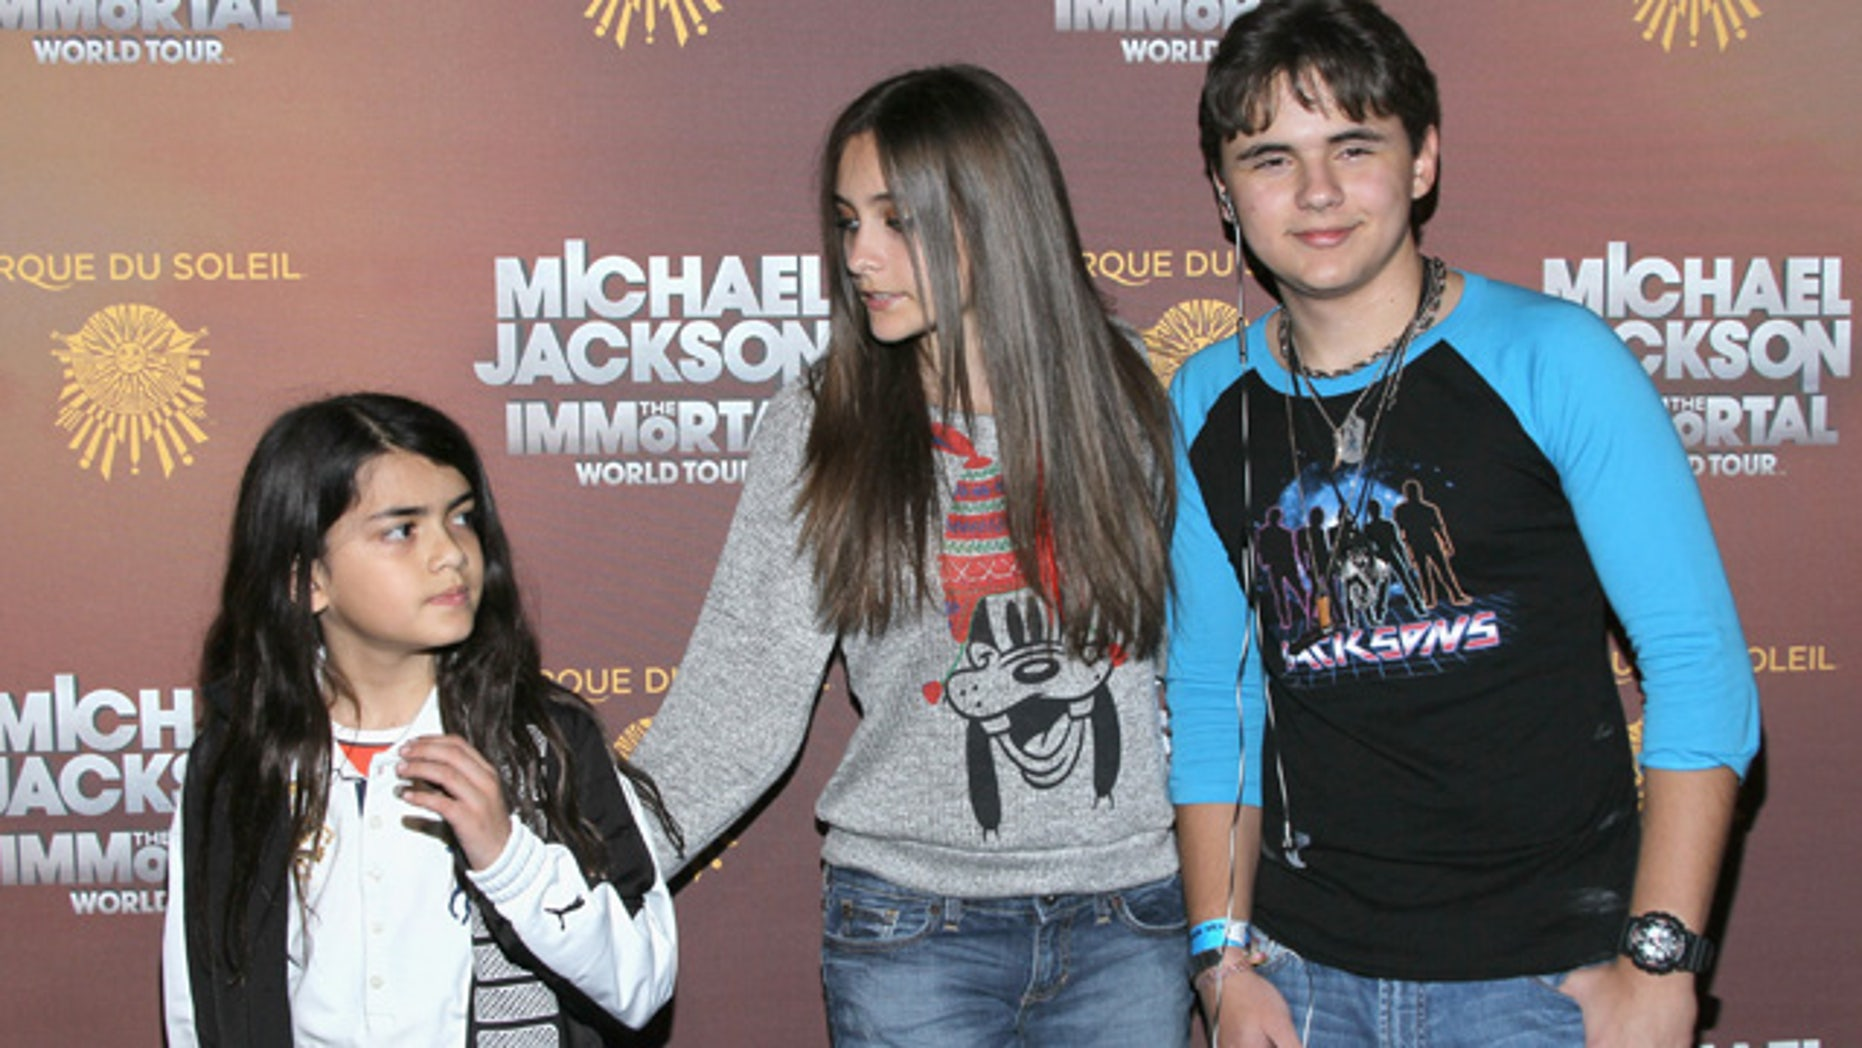 LOS ANGELES, CA - JANUARY 27:  (L-R) Blanket Jackson, Paris Jackson and Prince Jackson attend the Los Angeles premiere of Michael Jackson 'THE IMMORTAL' World Tour at Staples Center on January 27, 2012 in Los Angeles, California.  (Photo by Mark Davis/Getty Images)